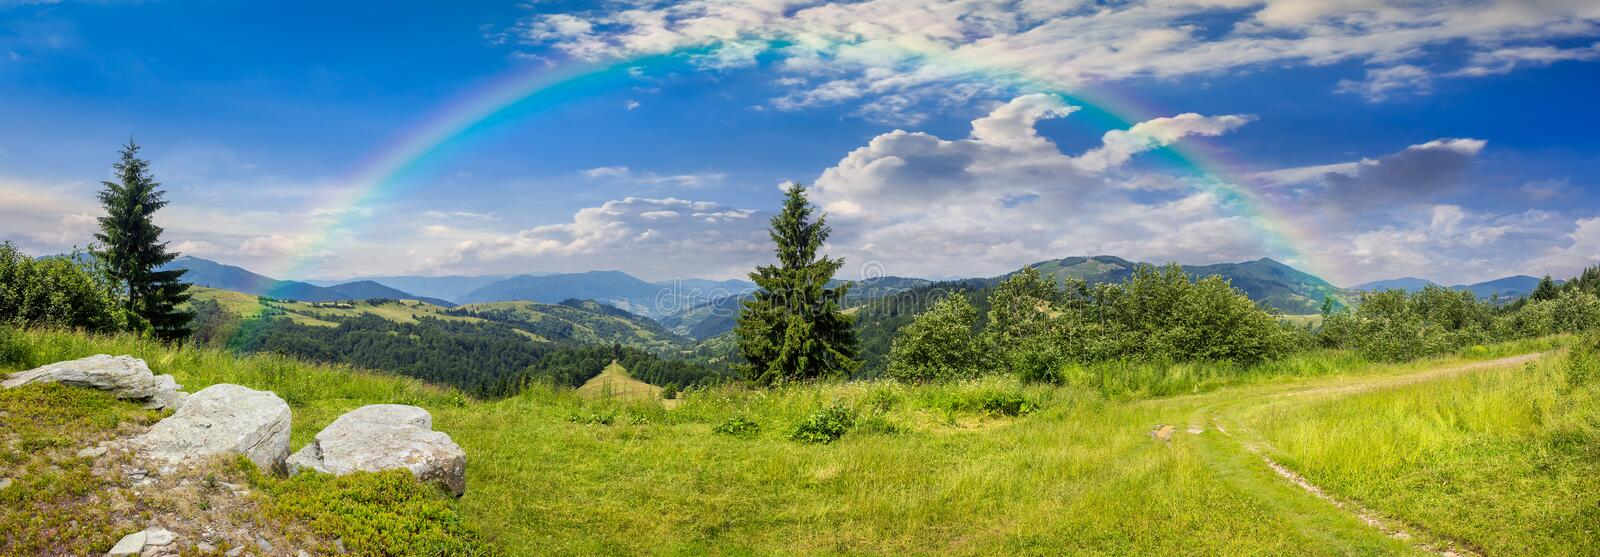 Boulders on hillside meadow in mountain with rainbow. Pnoramic collage landscape. boulders on the meadow with path on the hillside and two pine trees on top of royalty free stock photo